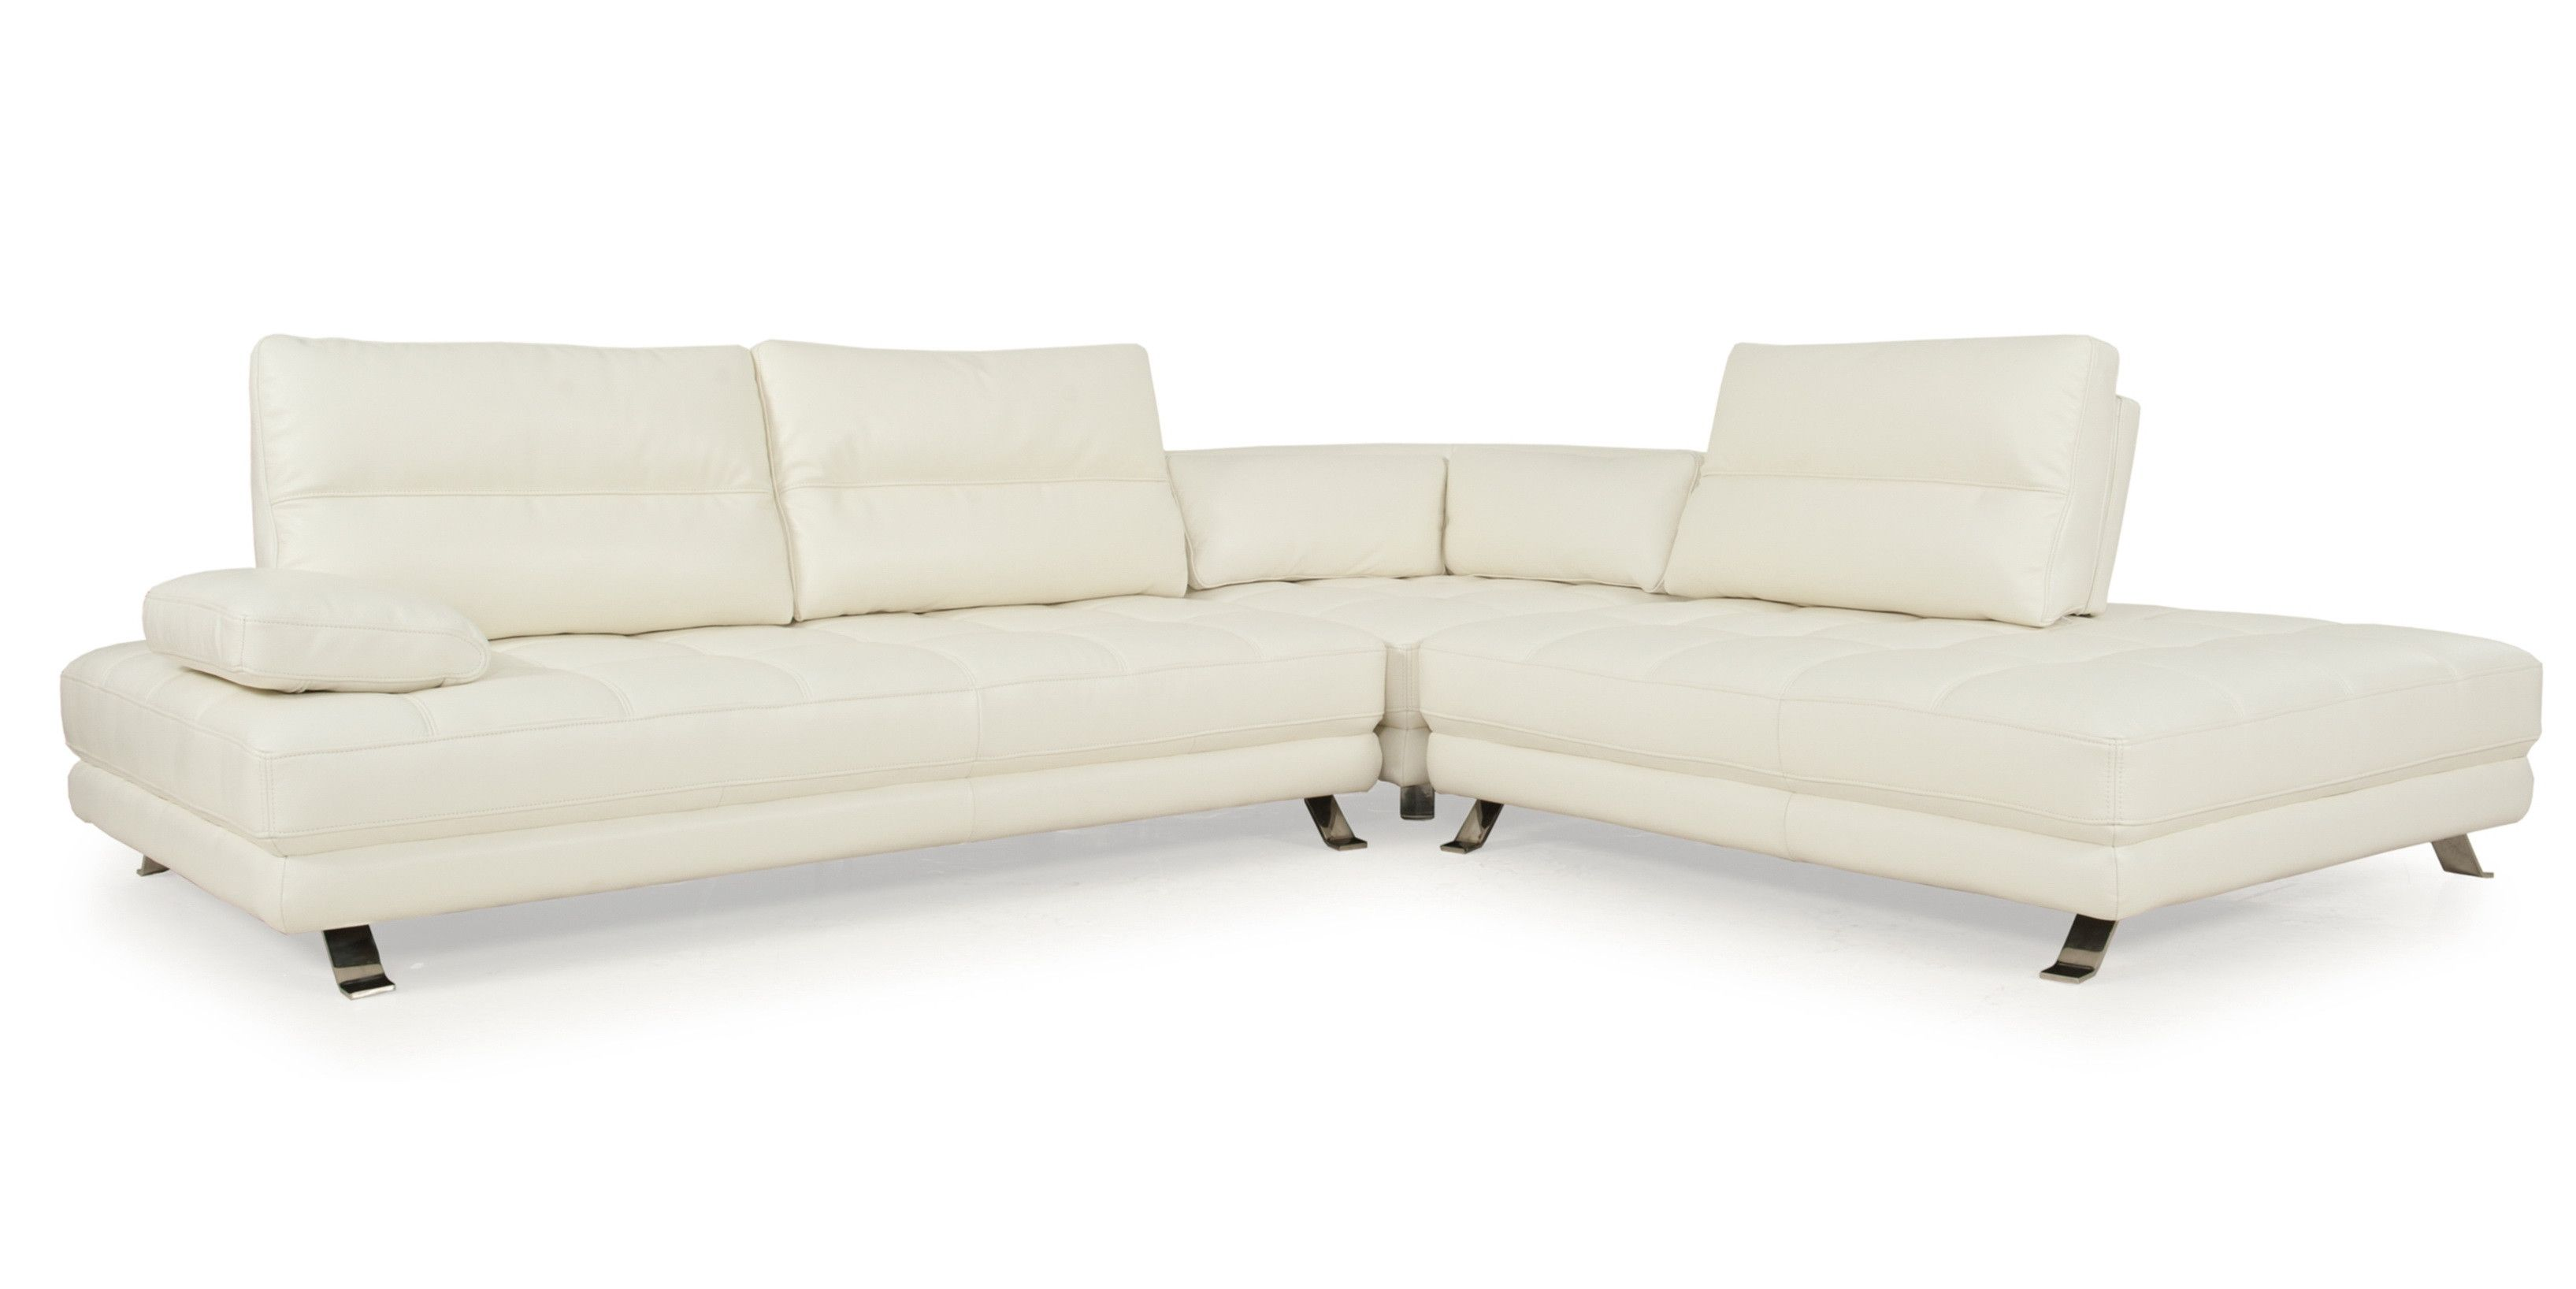 Teva Full Top Grain Leather Adjustable Contemporary Sectional